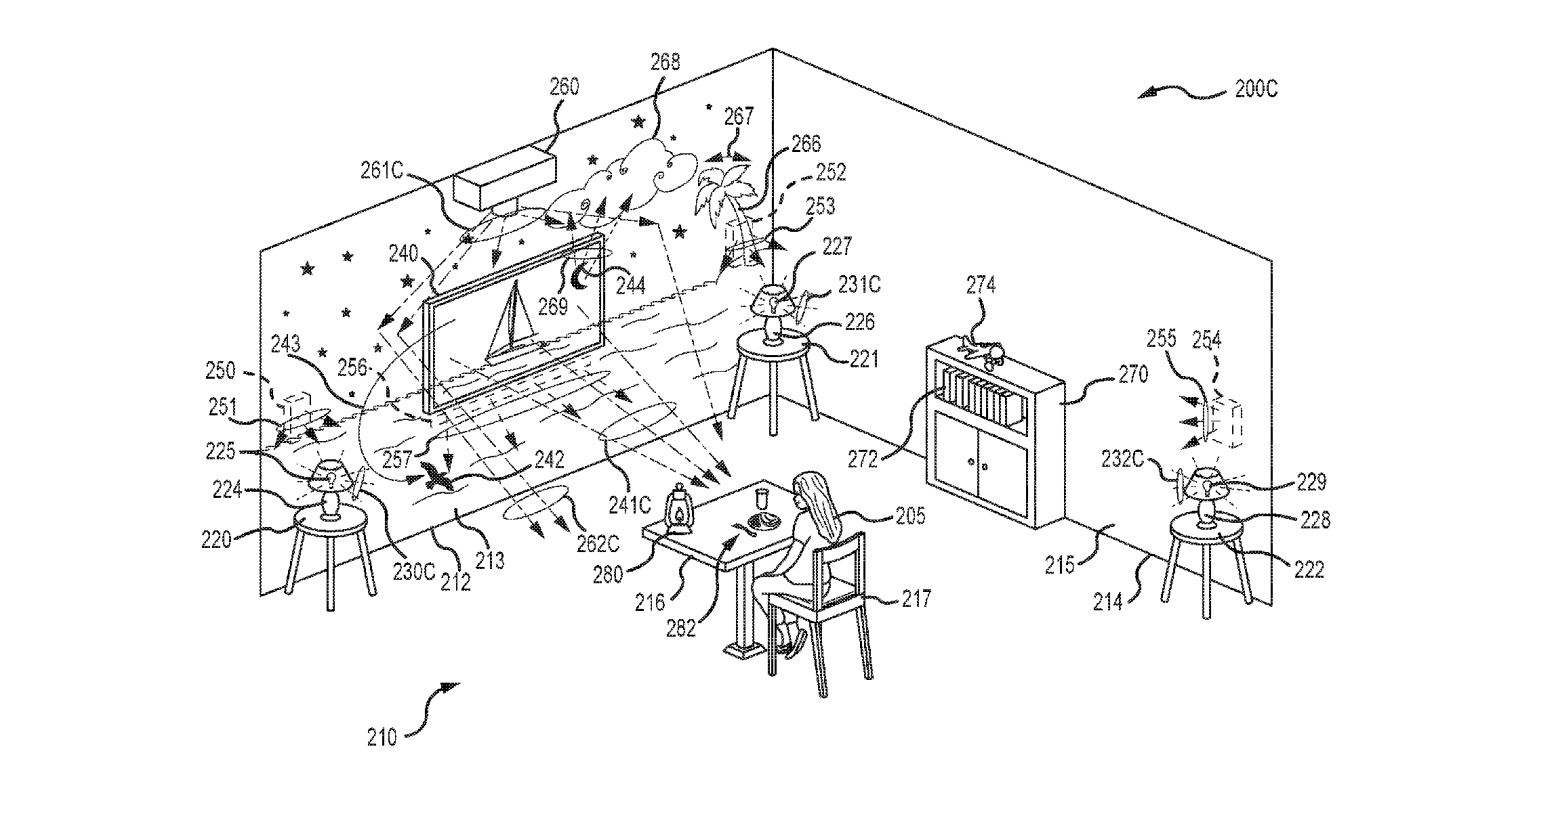 Disney Files Patent For Star Wars Hotel Room Immersive